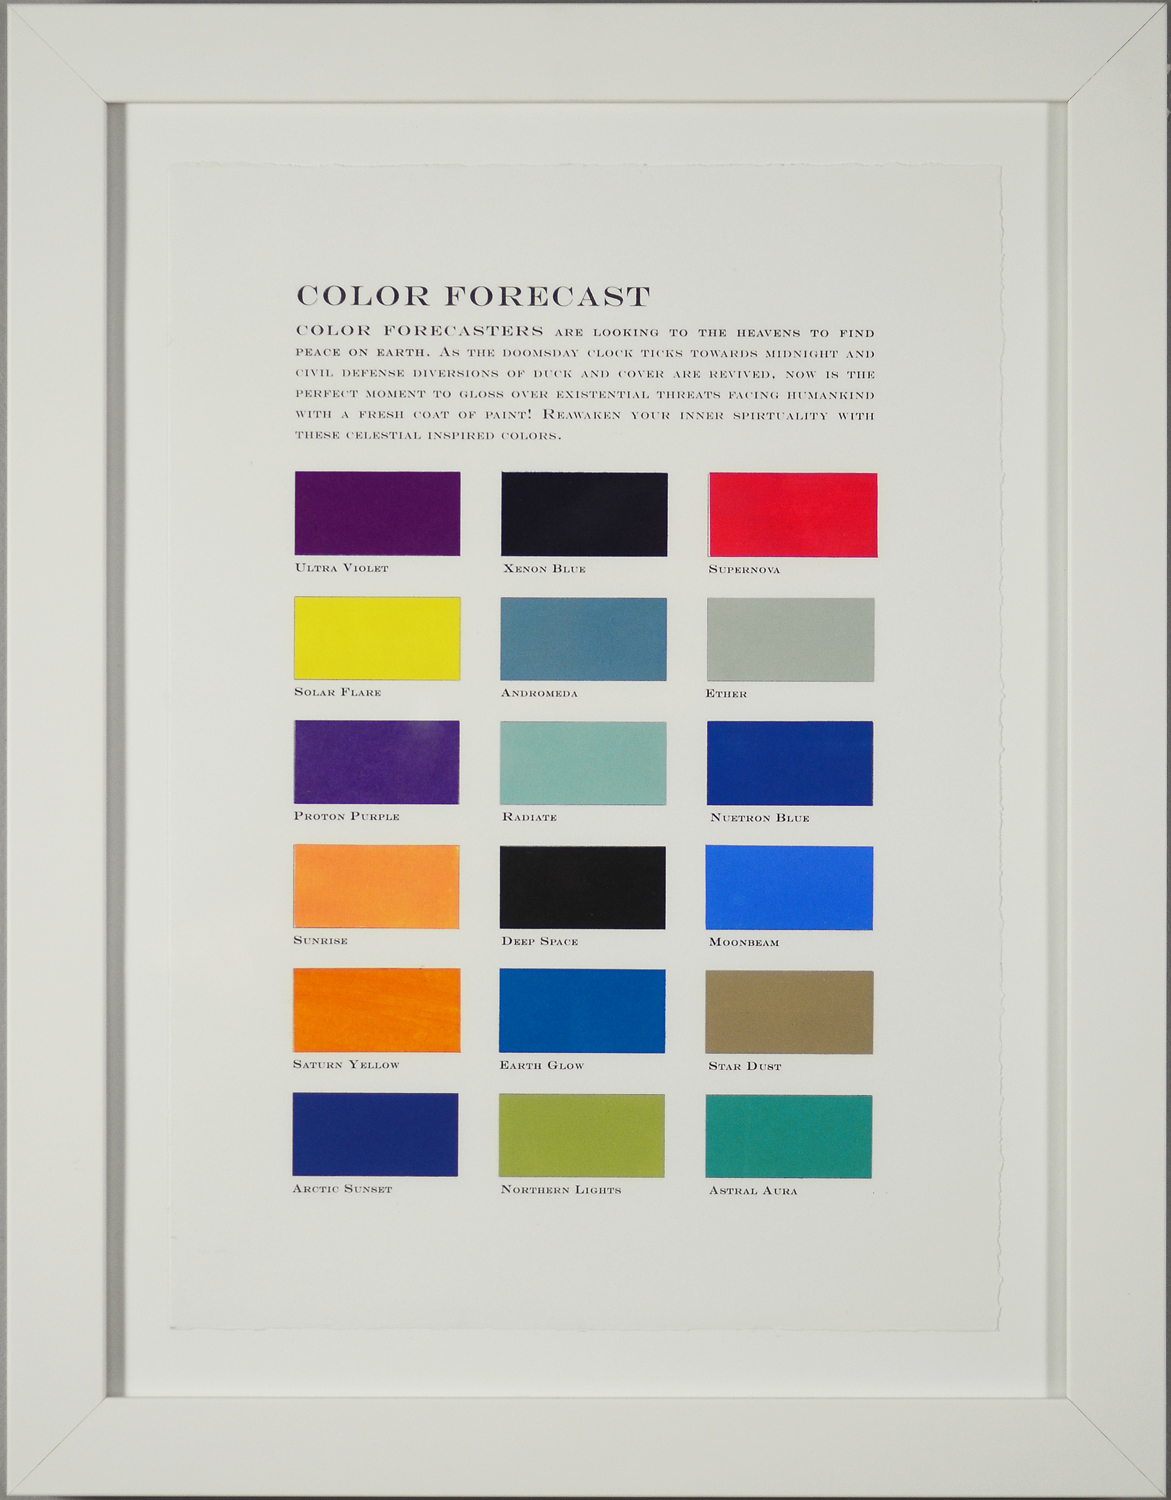 Color Forecast No. 5: Spirituality